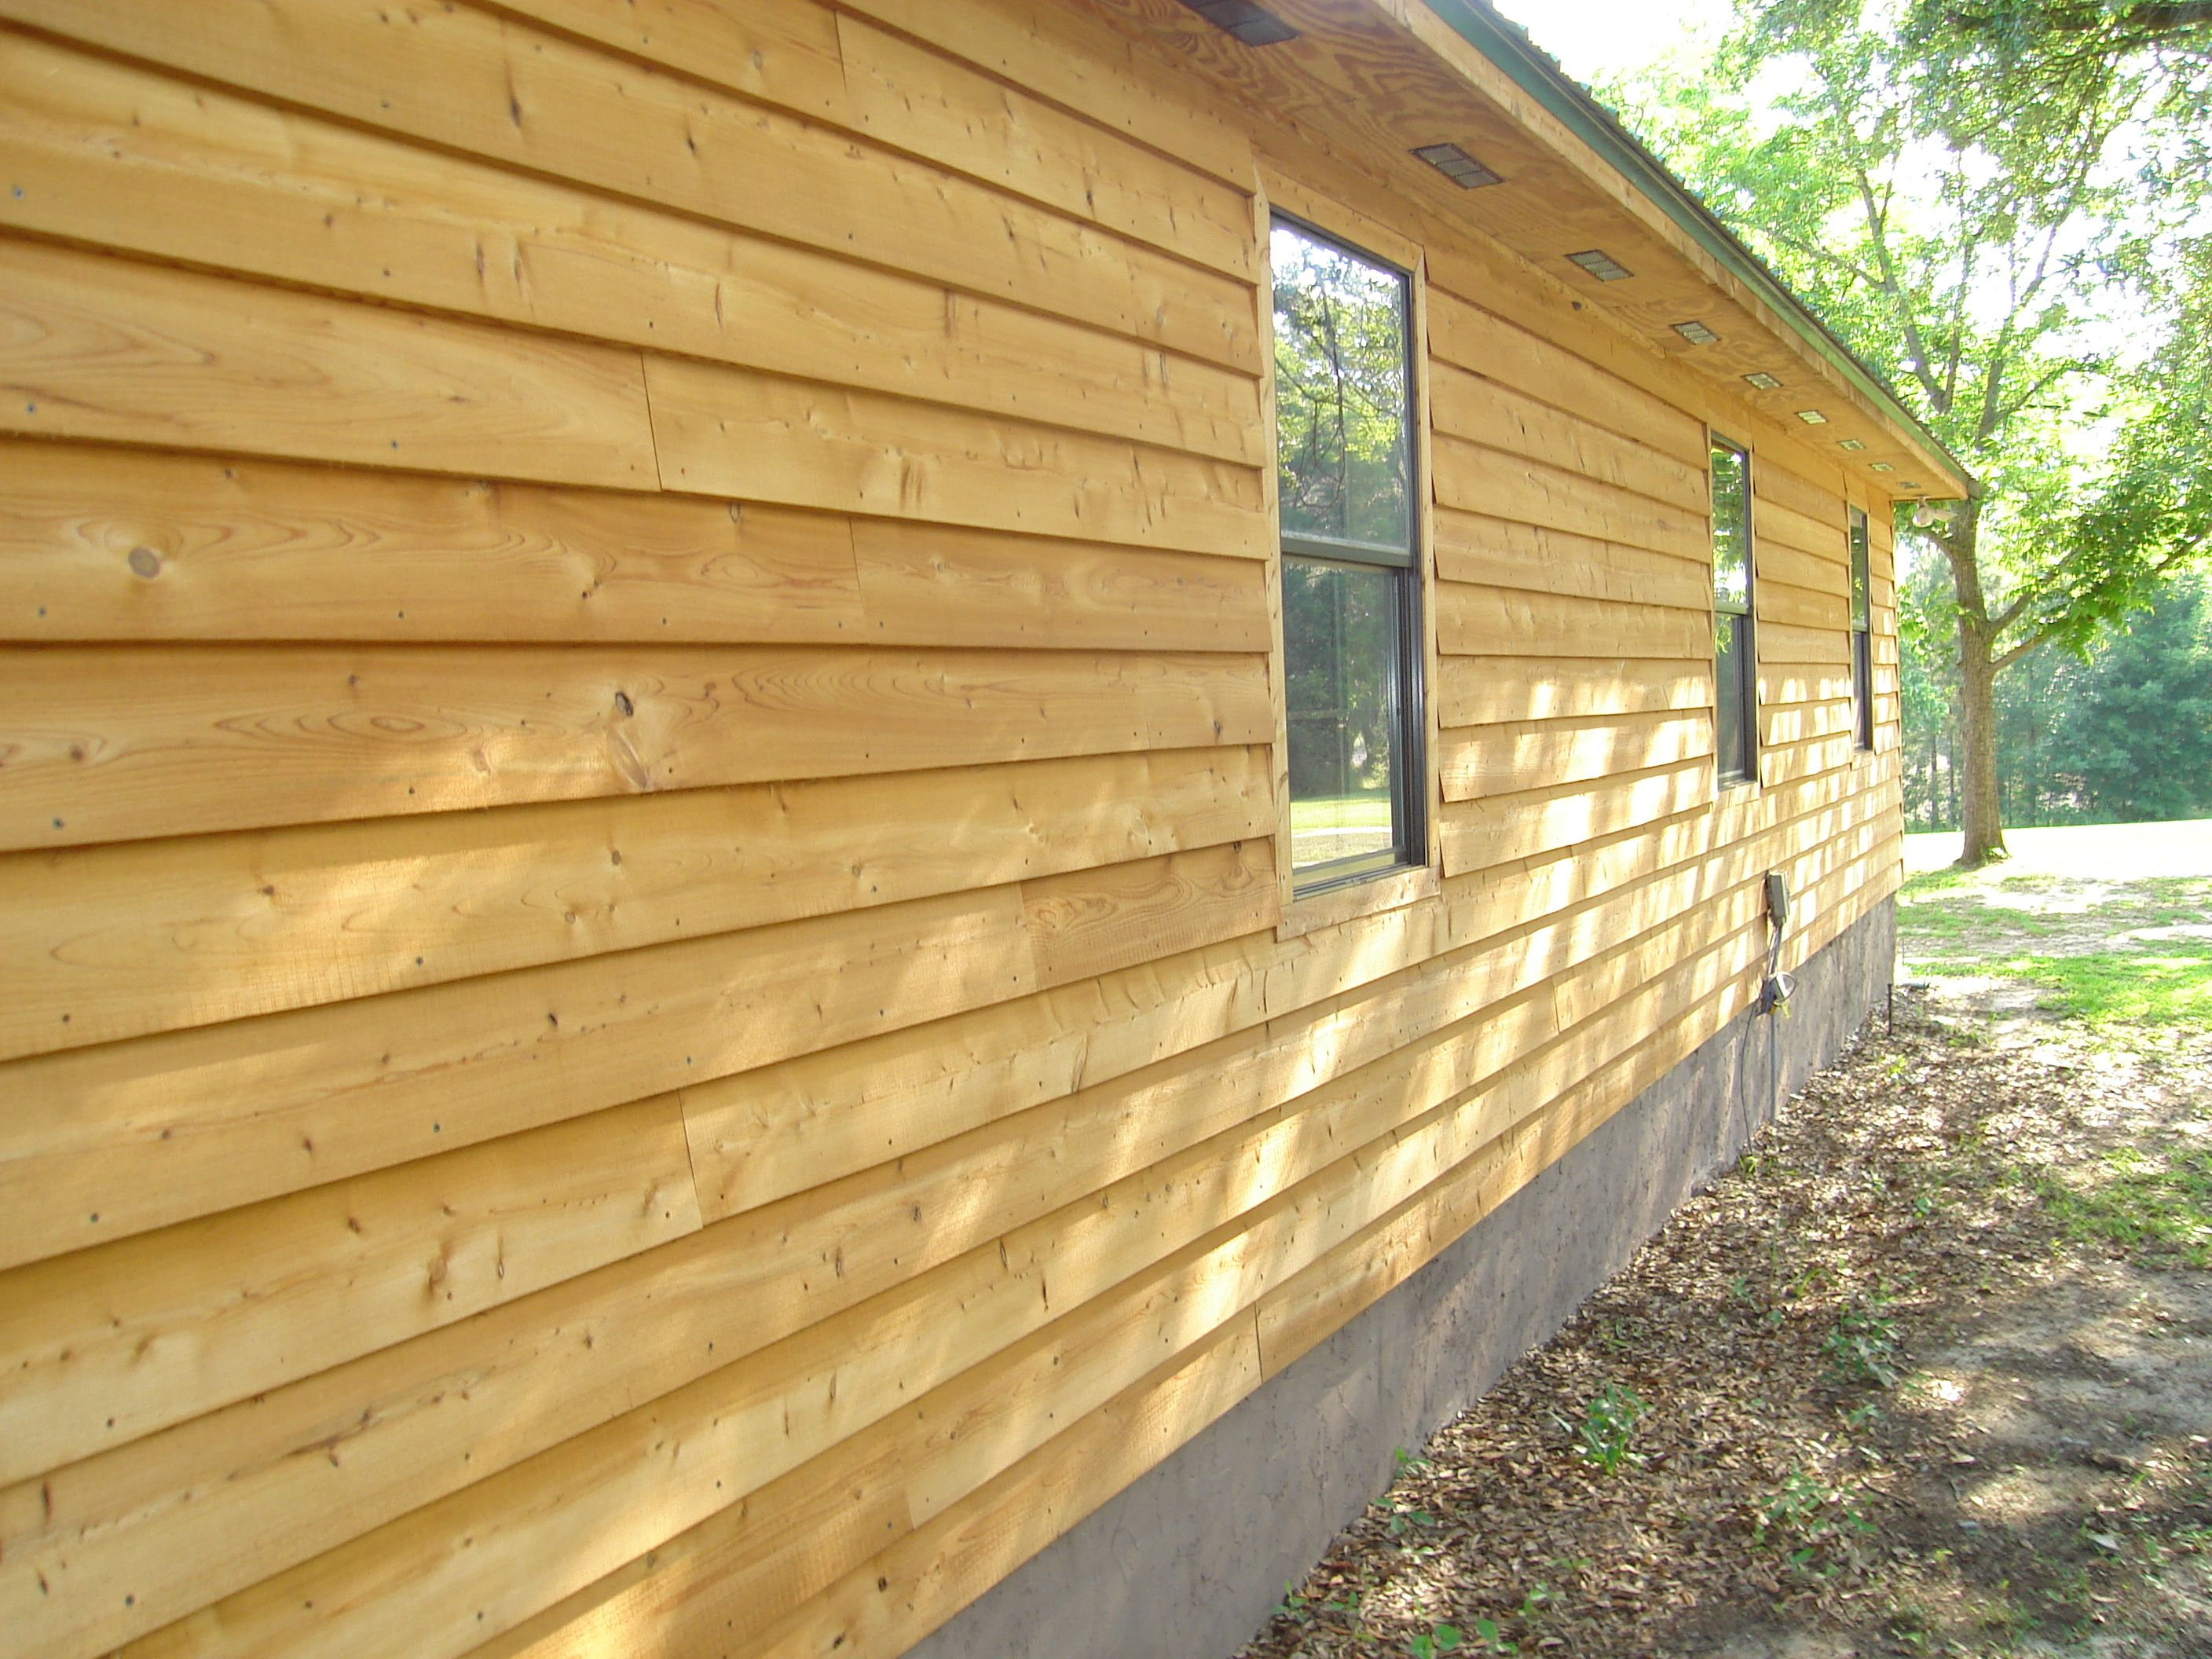 Shiplap Walls Siding Tongue And Groove Wood